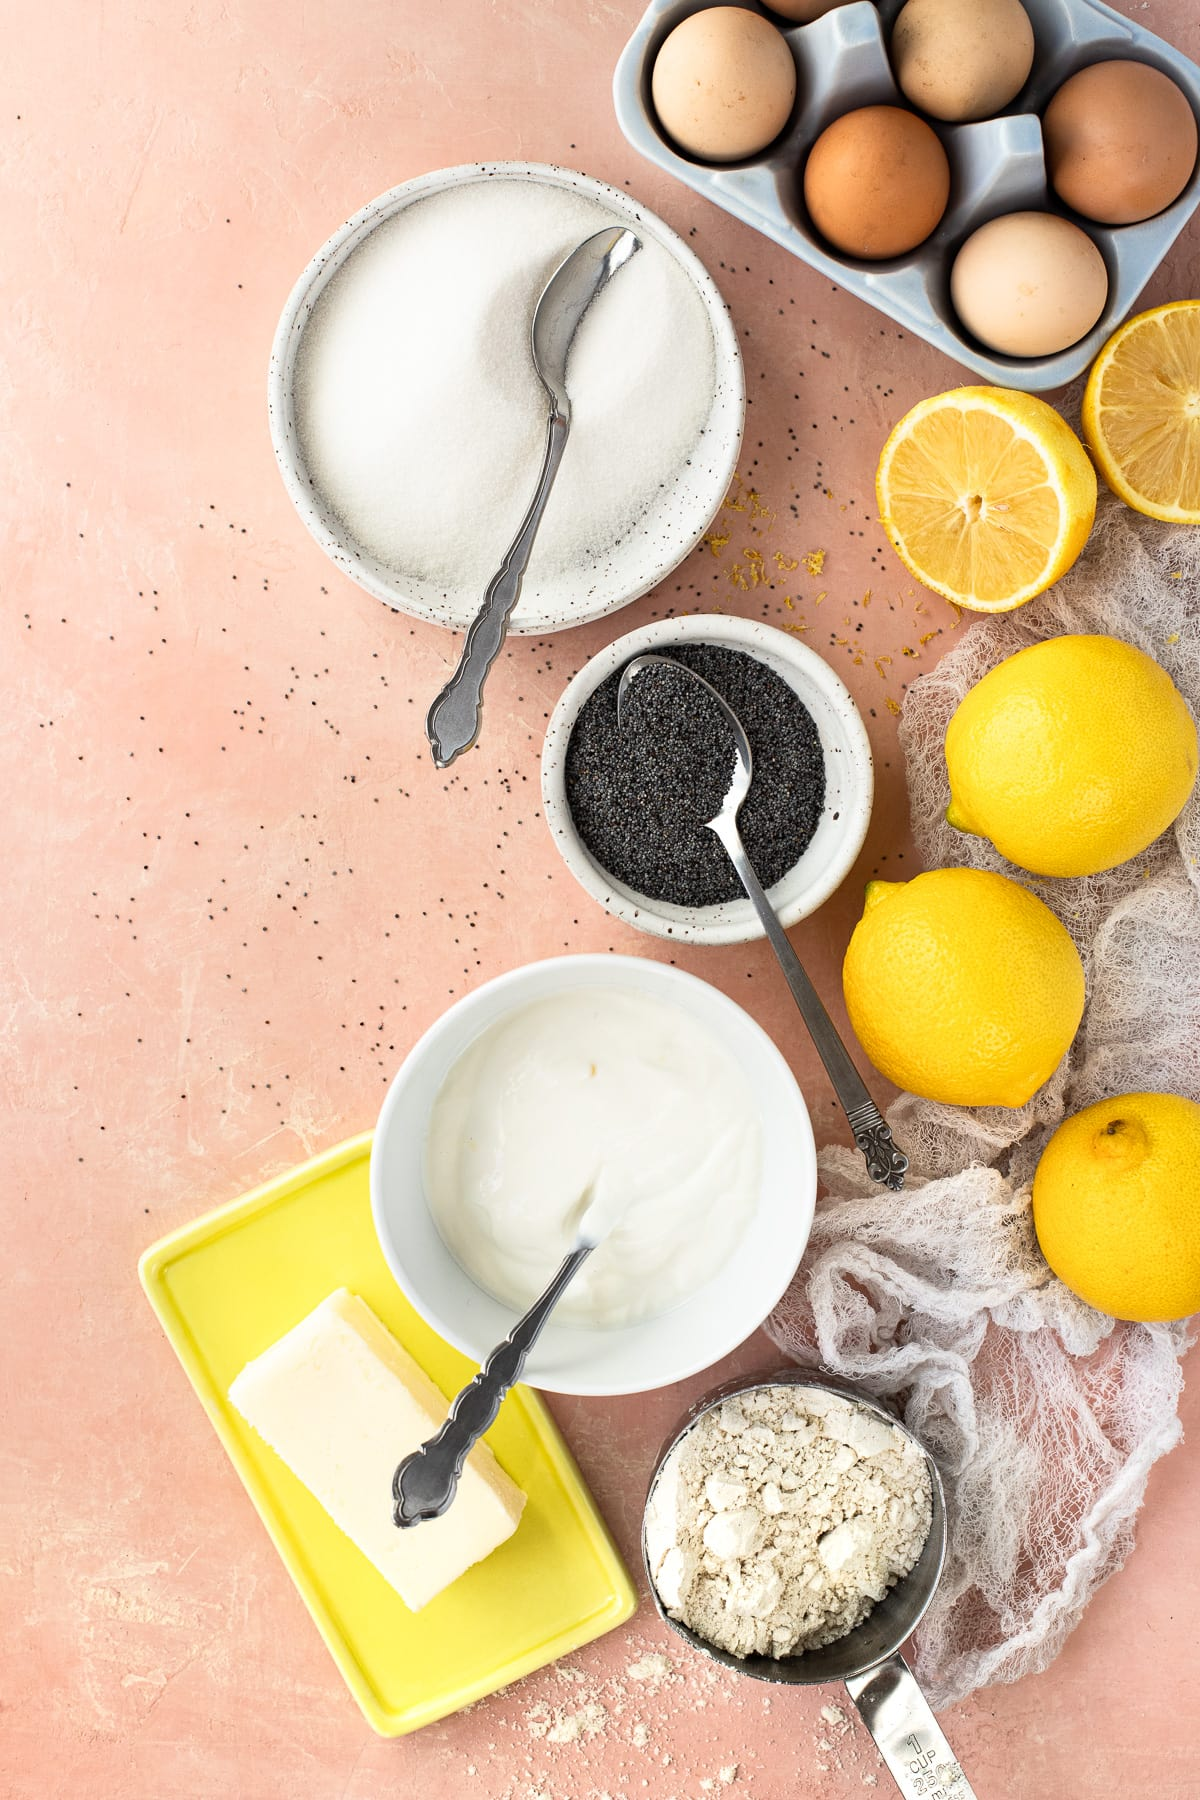 Overhead view of ingredients used to make muffins.